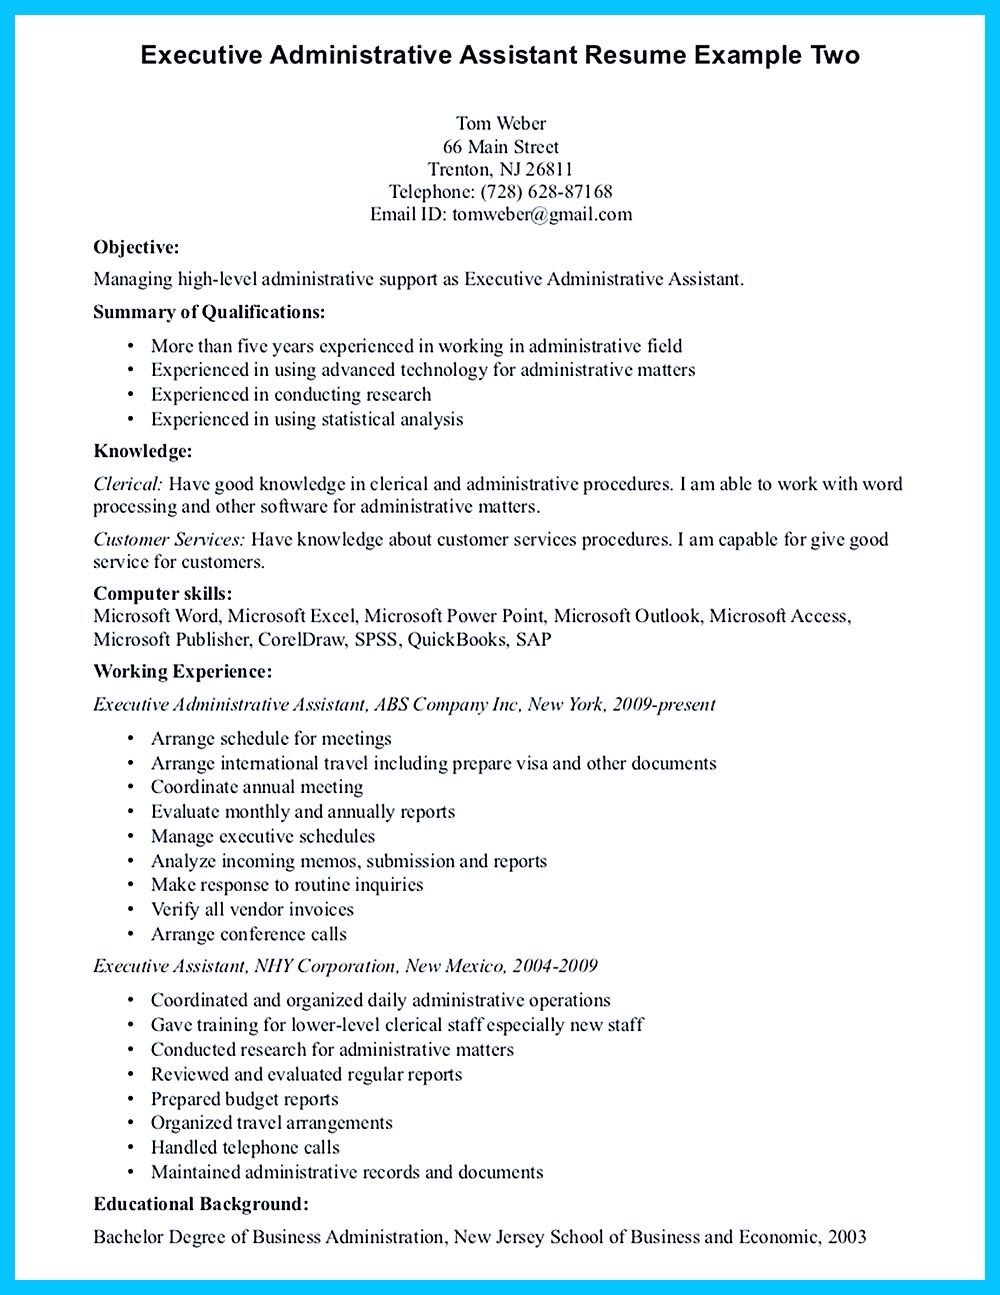 Sample Executive Assistant Resume In Writing Entry Level Administrative Assistant Resume You Need